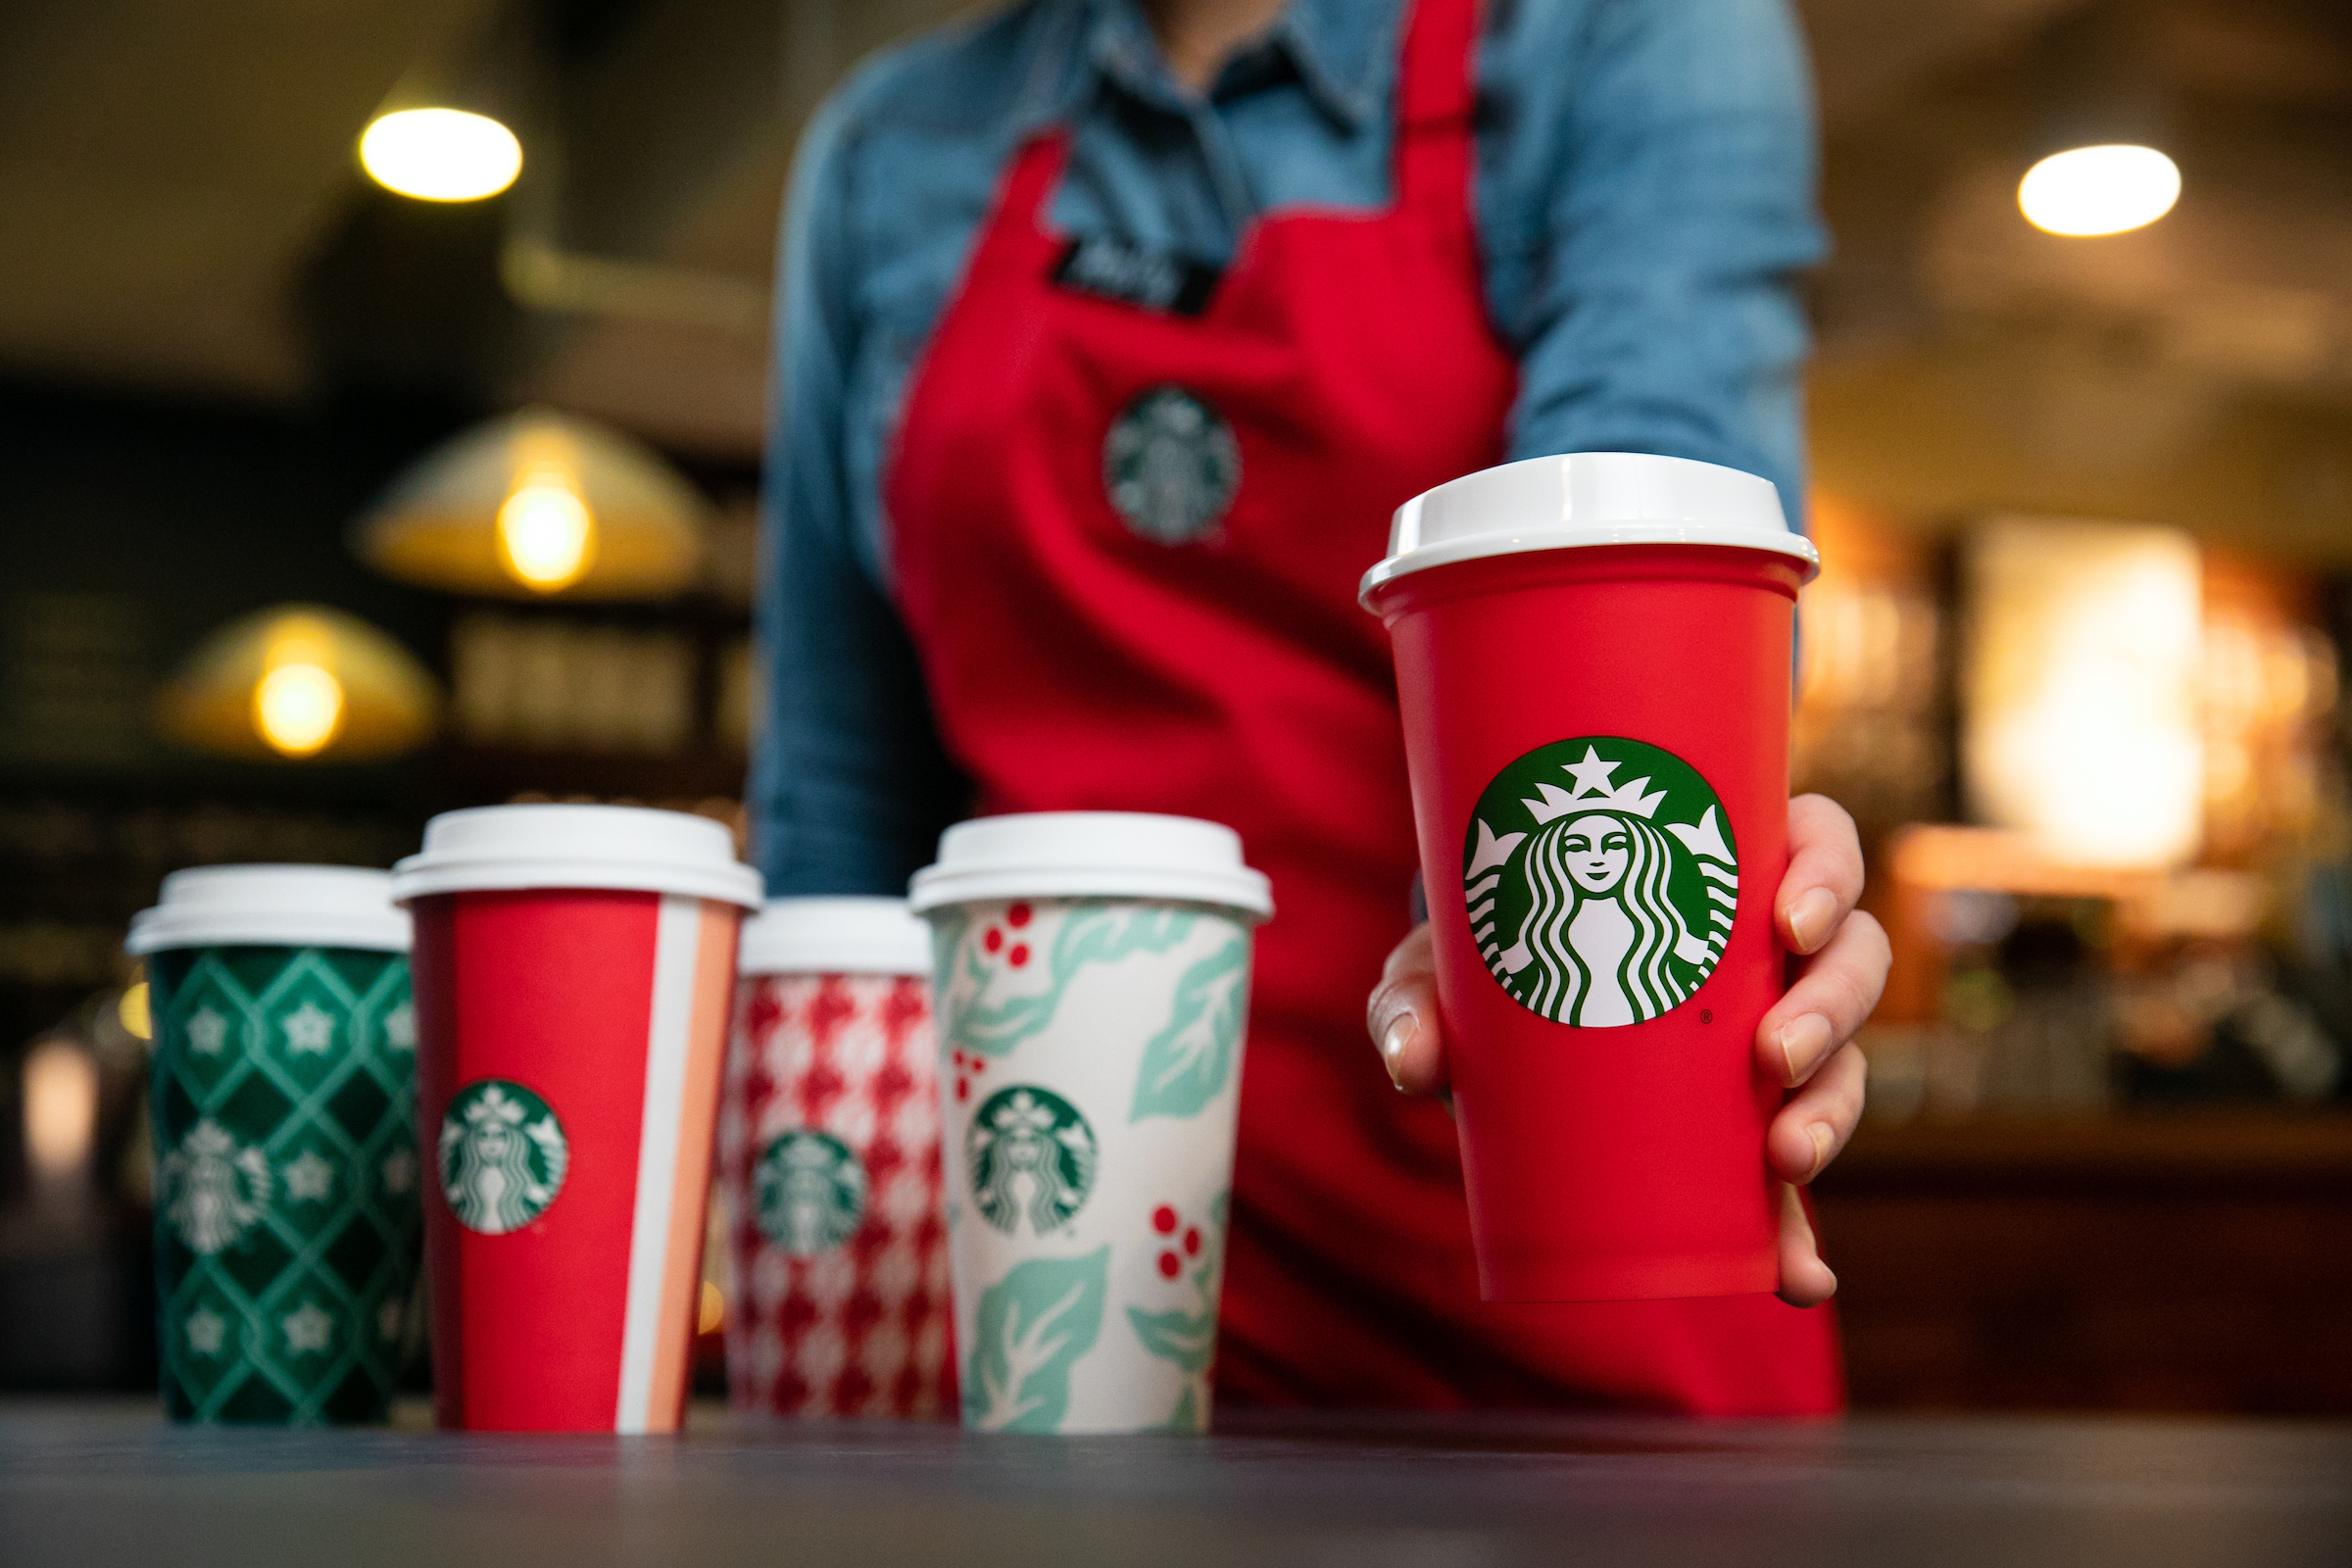 Christmas Eve hours: Is Starbucks open